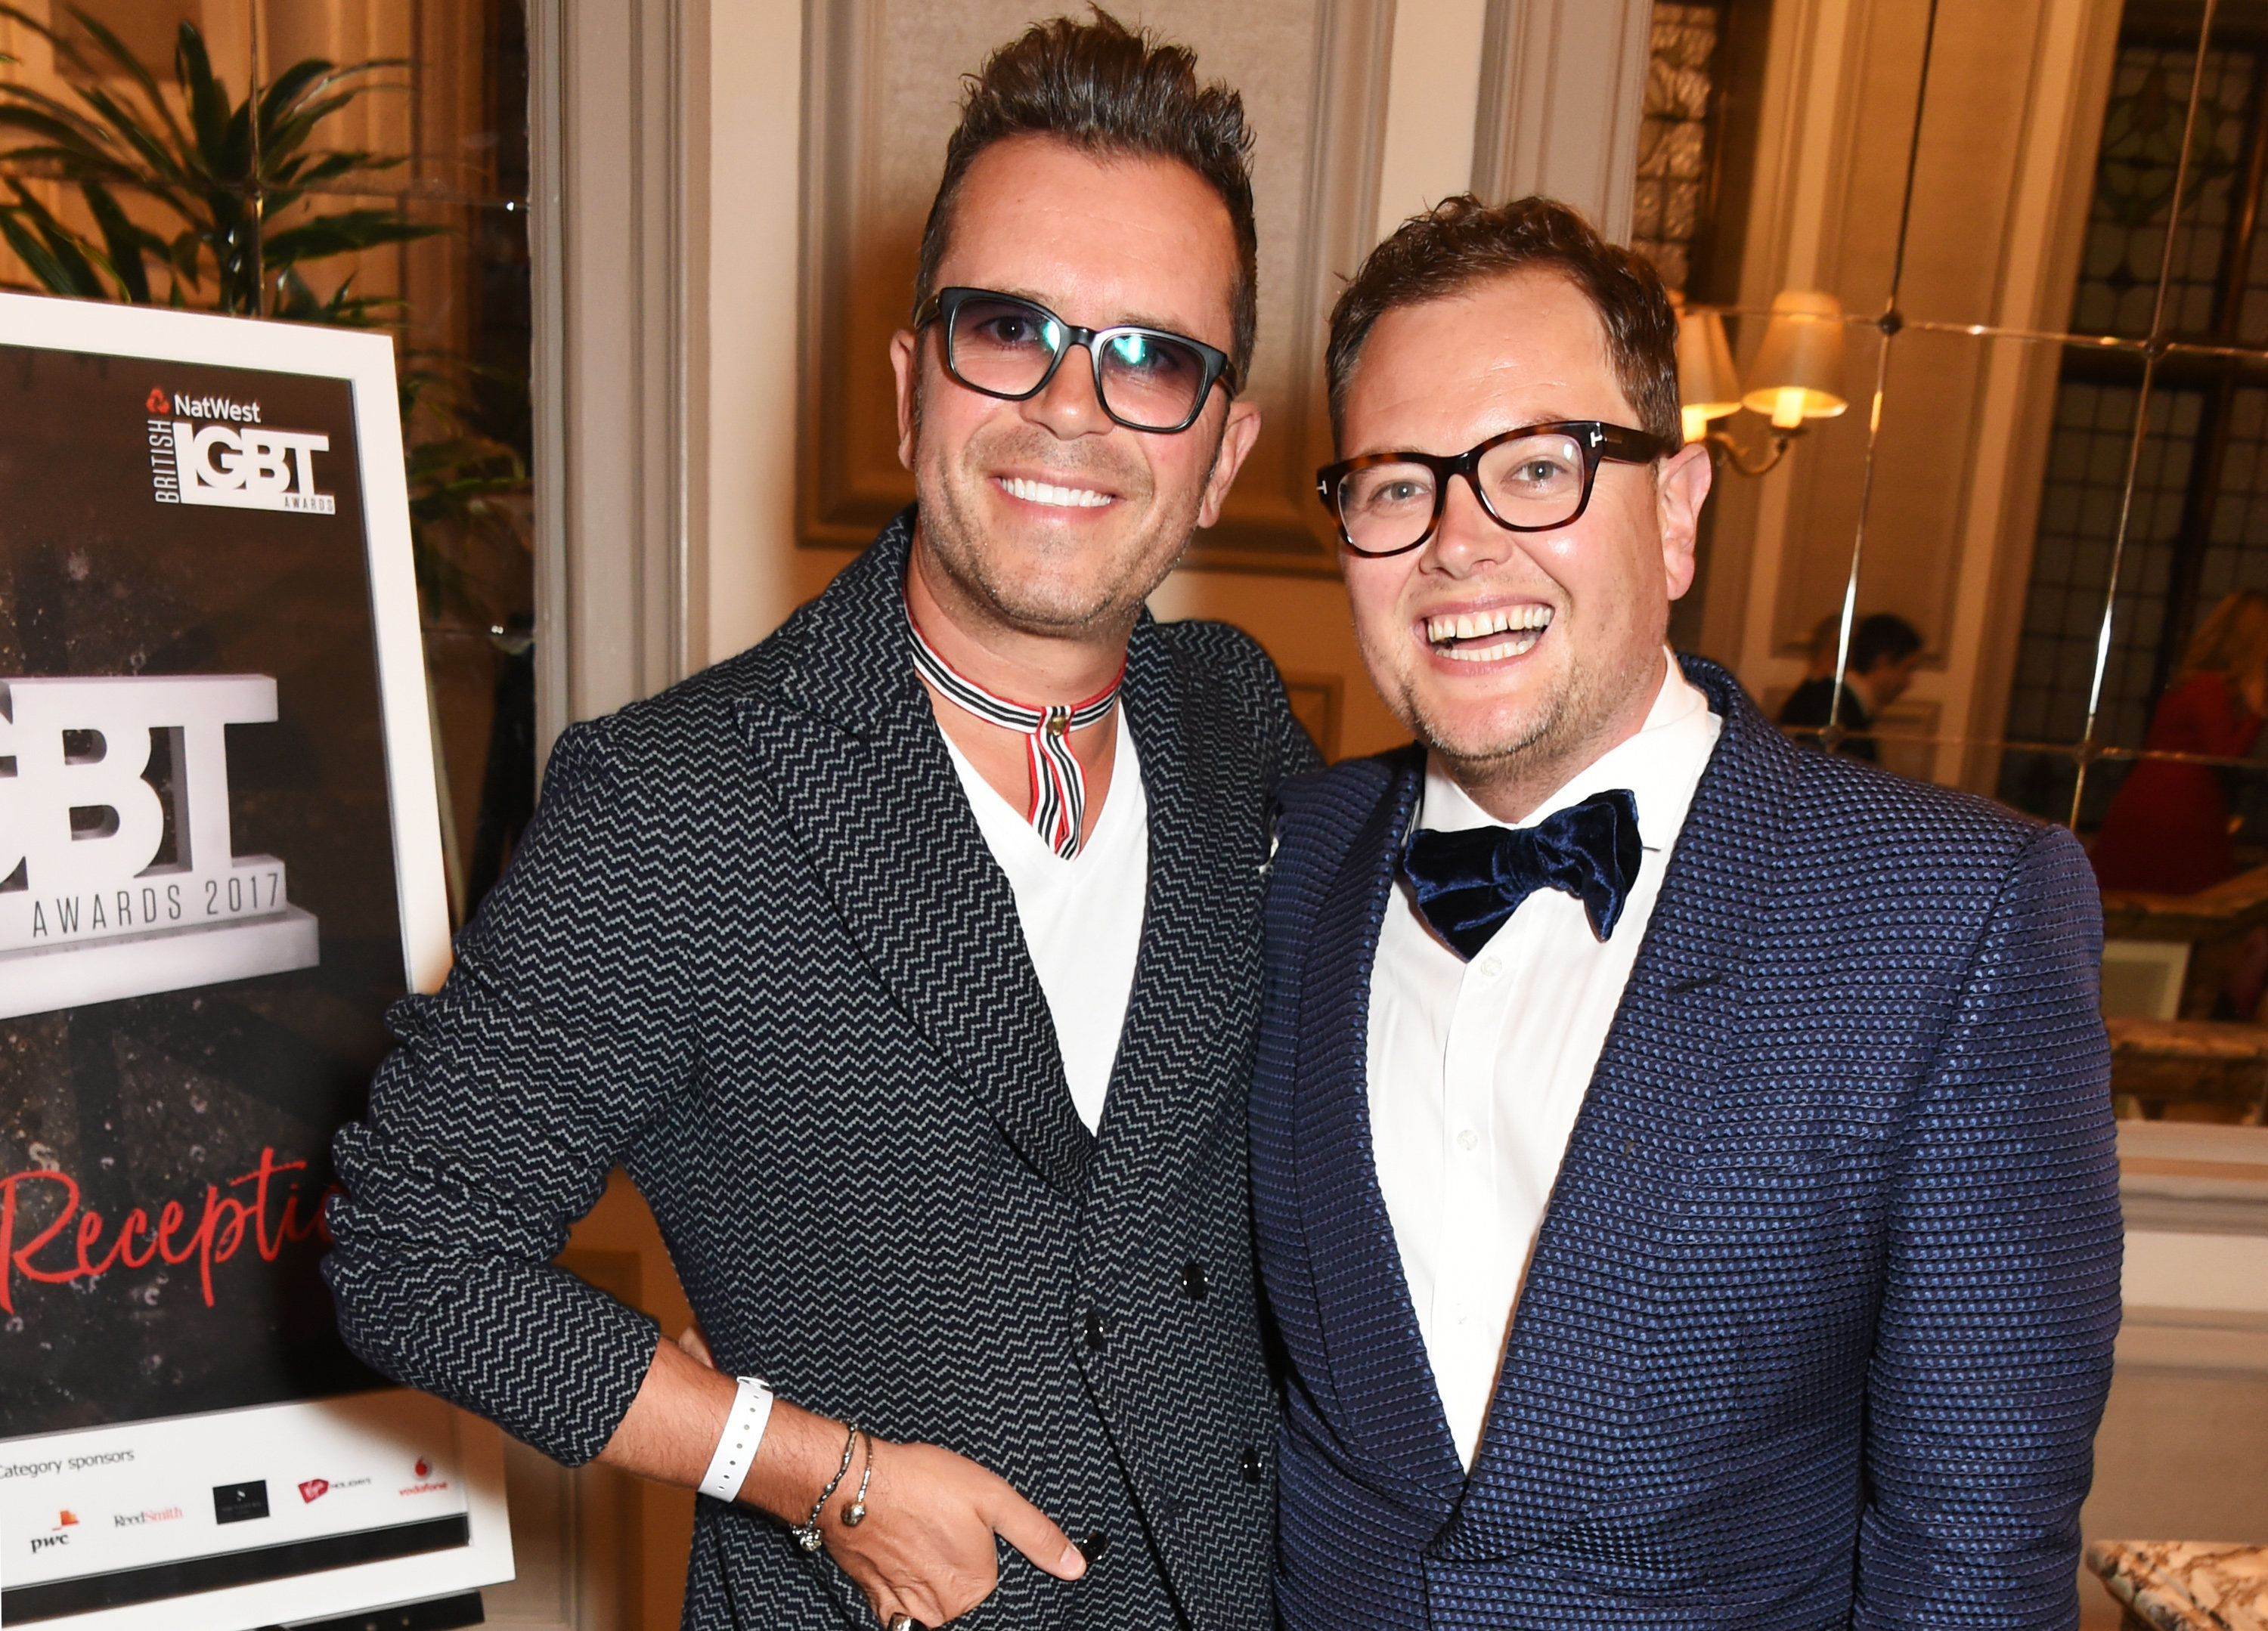 Alan Carr Marries Partner Of 10 Years, Paul Drayton, In Private